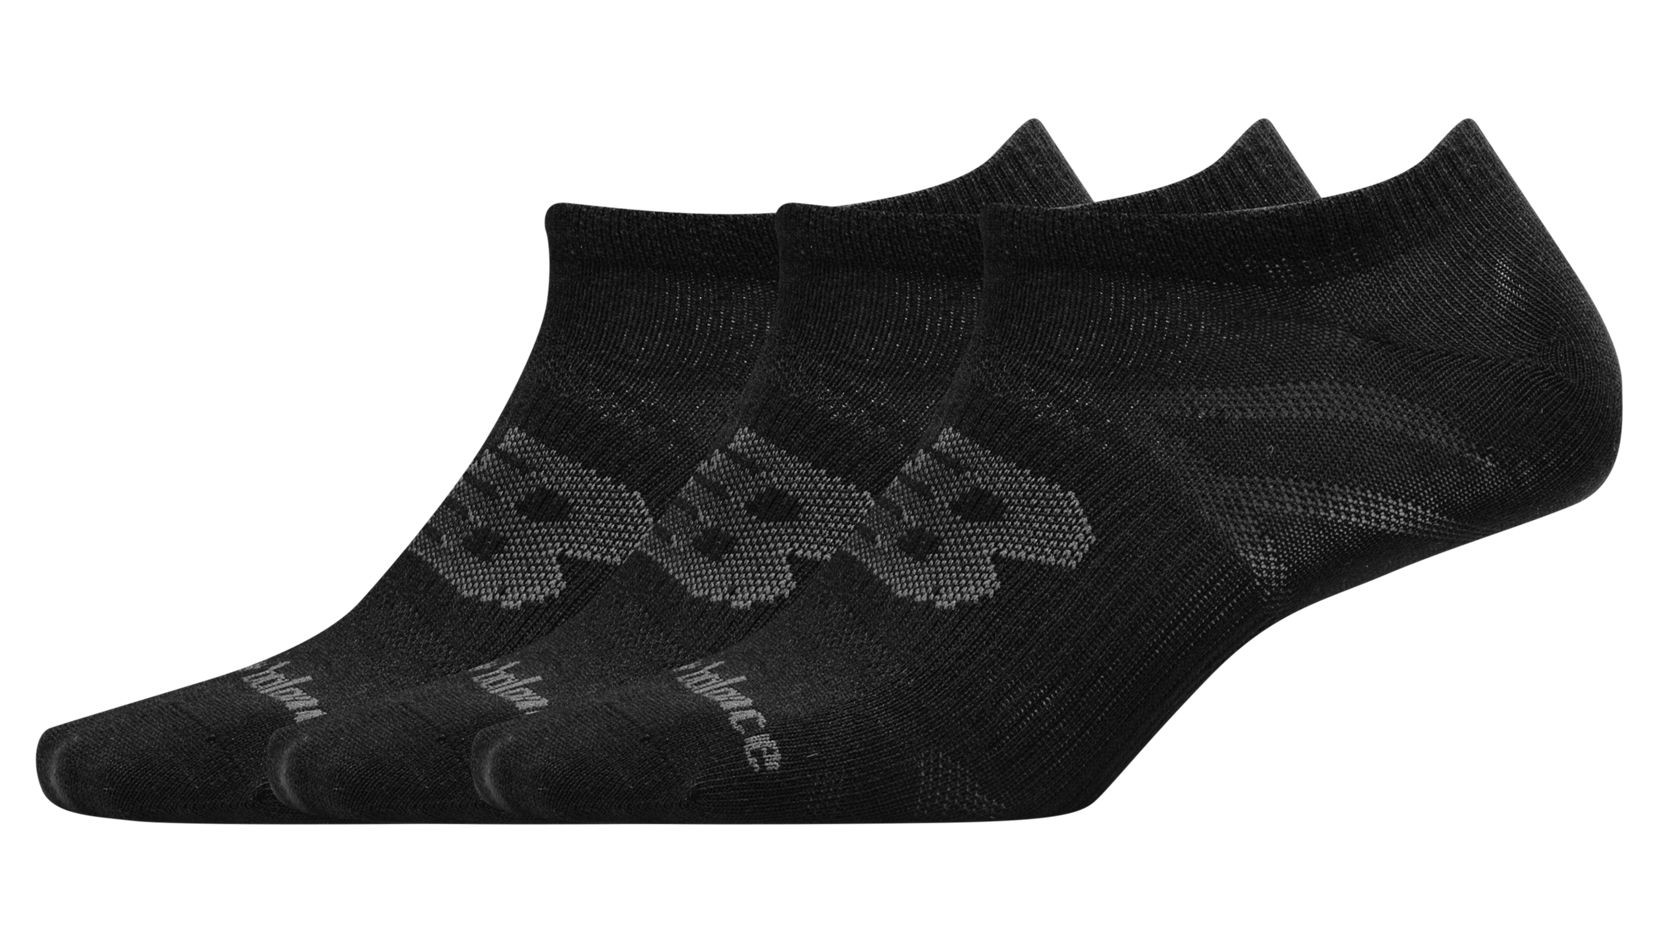 Носки UNISEX FLAT KNIT NO SHOW SOCK 3 PAIR фото